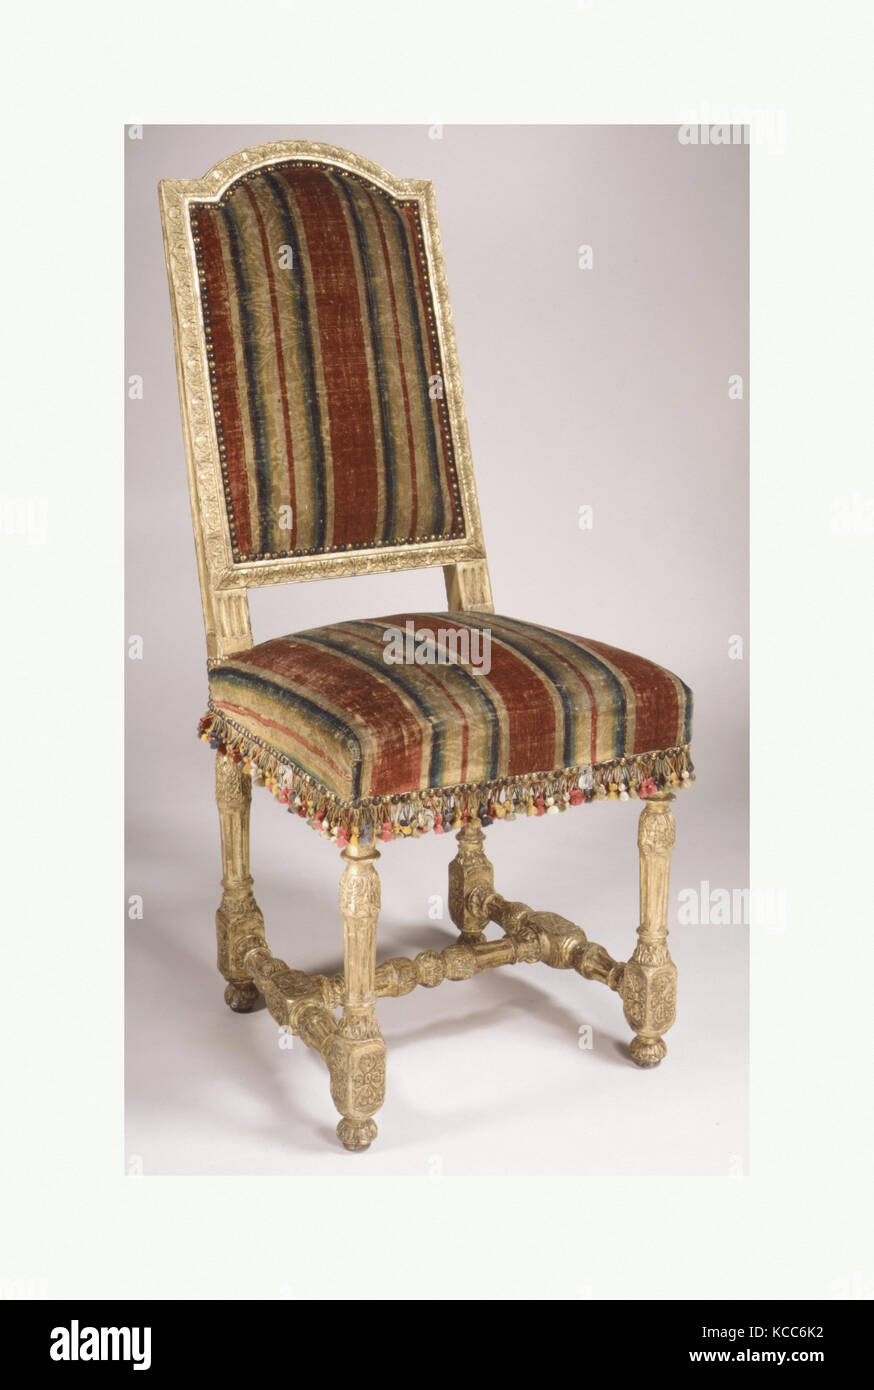 Gilded Chair Stock Photos U0026 Gilded Chair Stock Images   Alamy